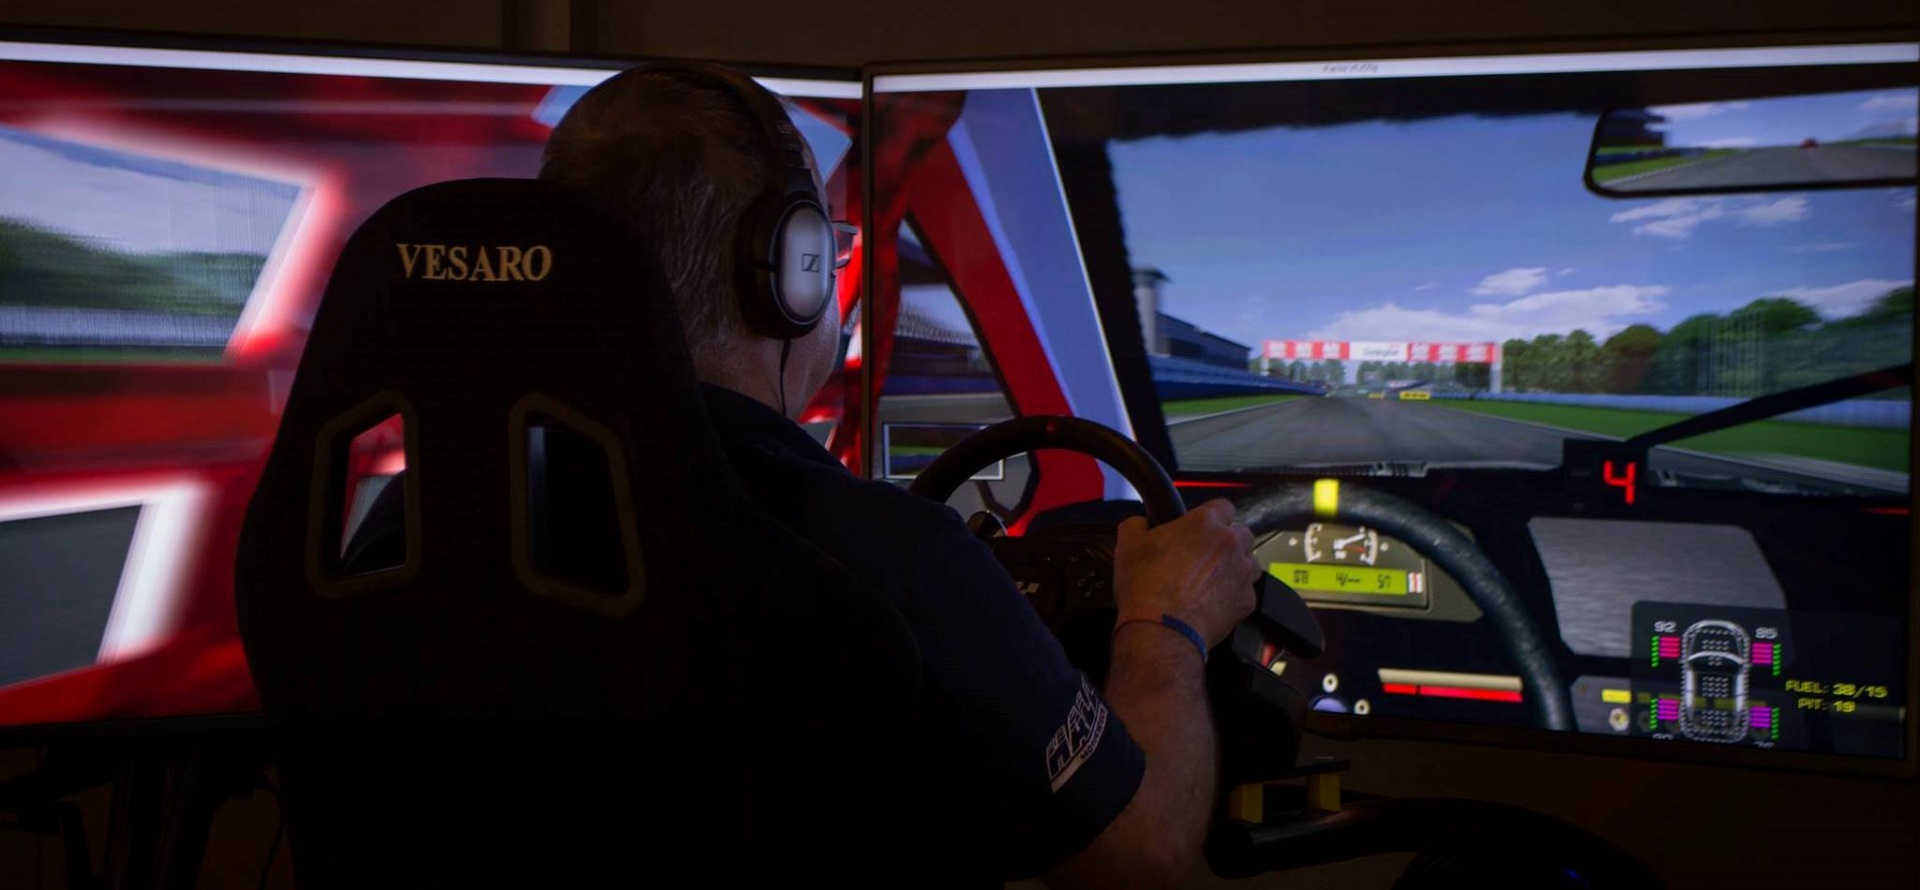 Open Championship Race Simulation Experience in Berkshire-1